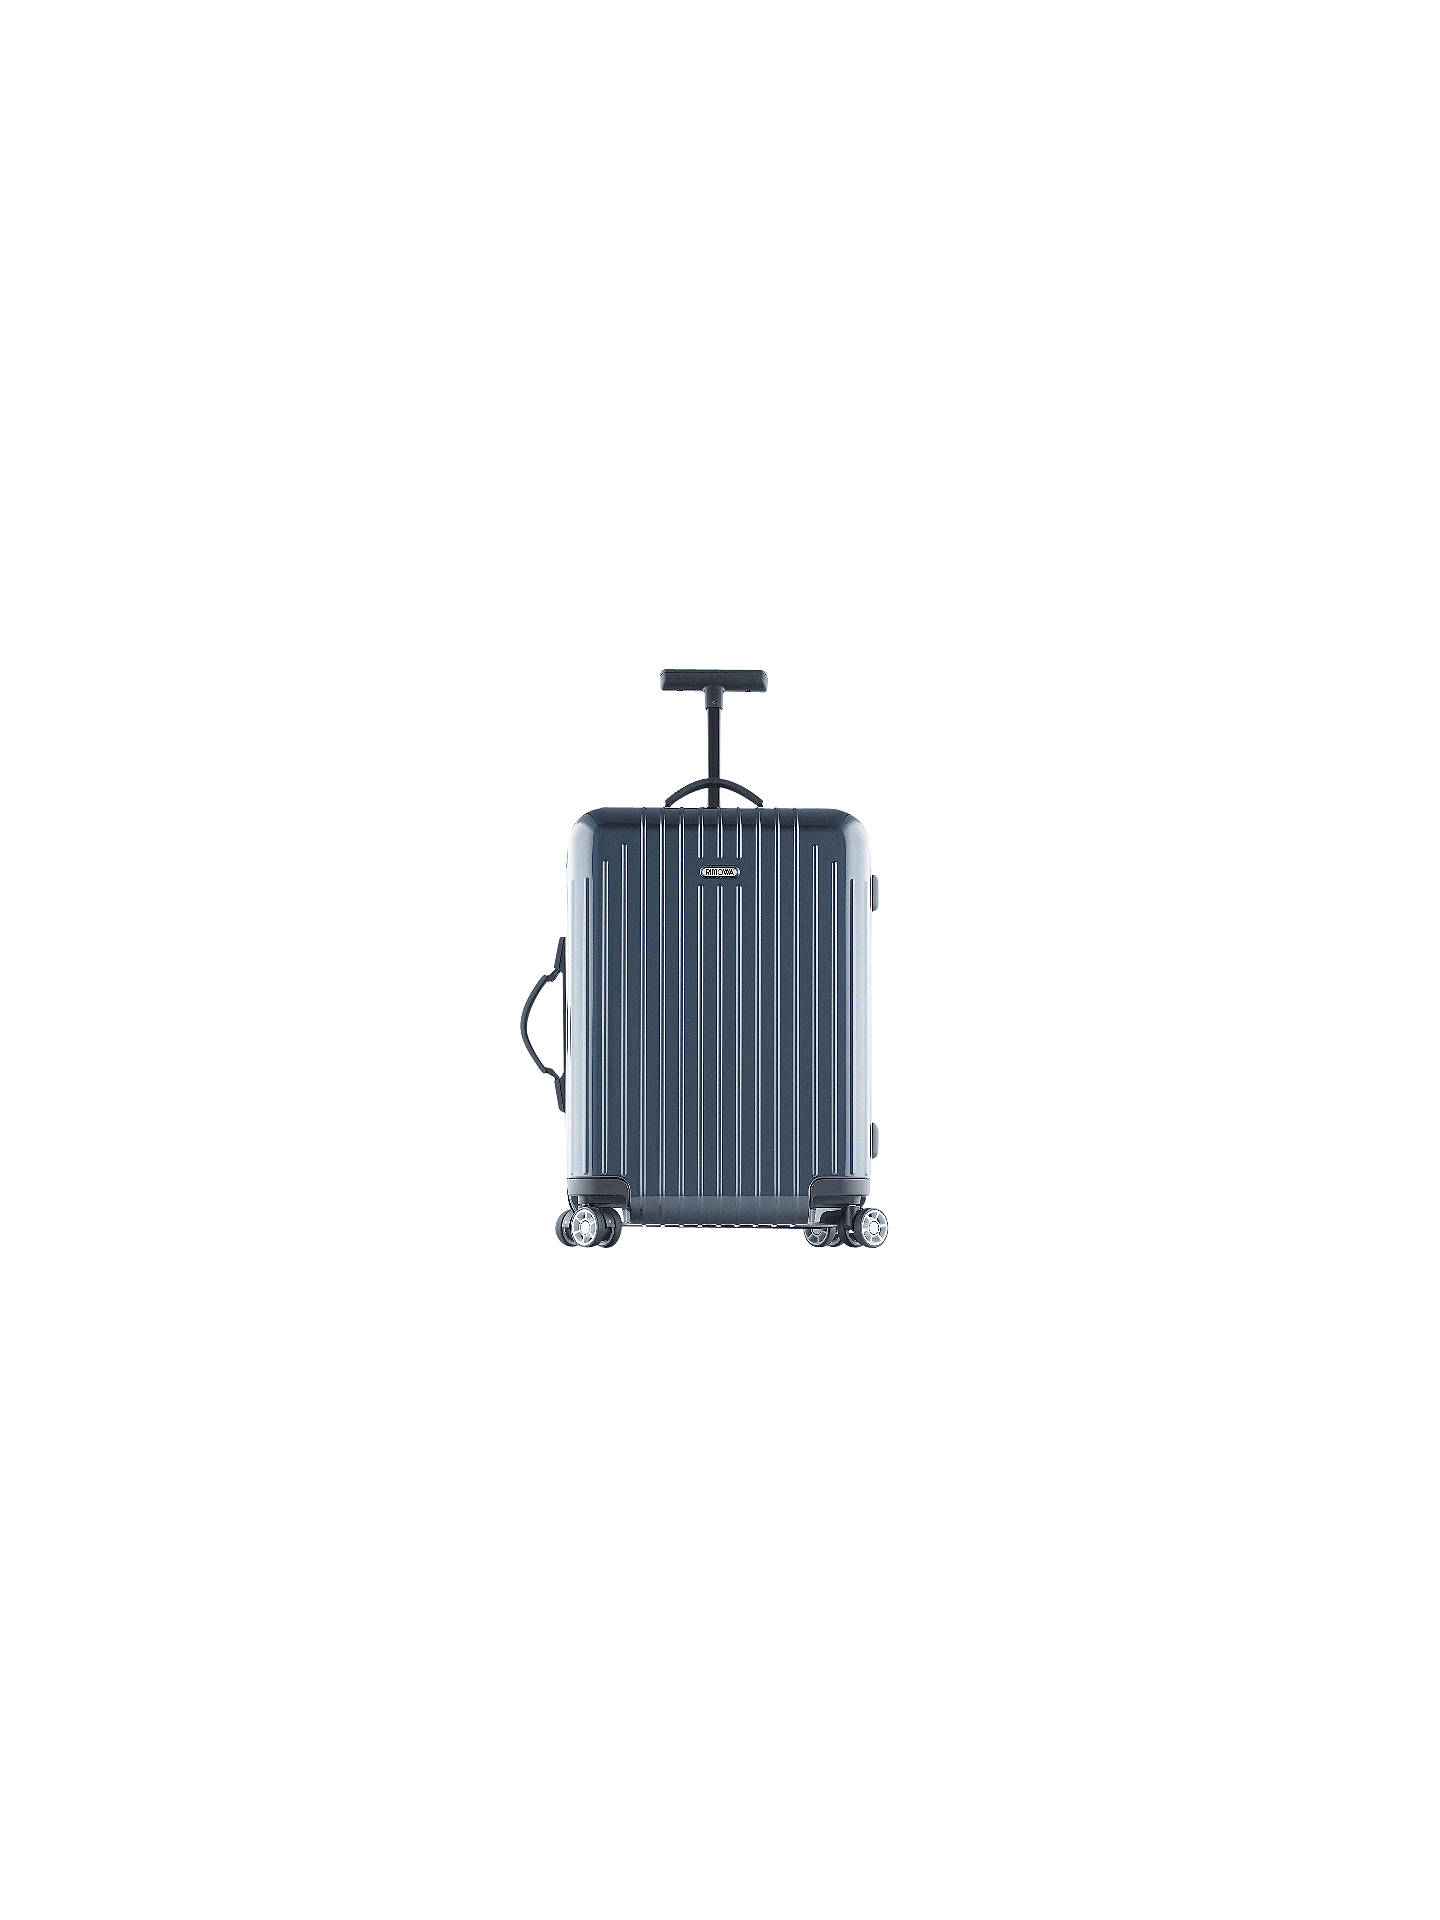 c7a228d3e Buy Rimowa Salsa Air 4-Wheel 68cm Spinner Suitcase, Navy Online at  johnlewis.